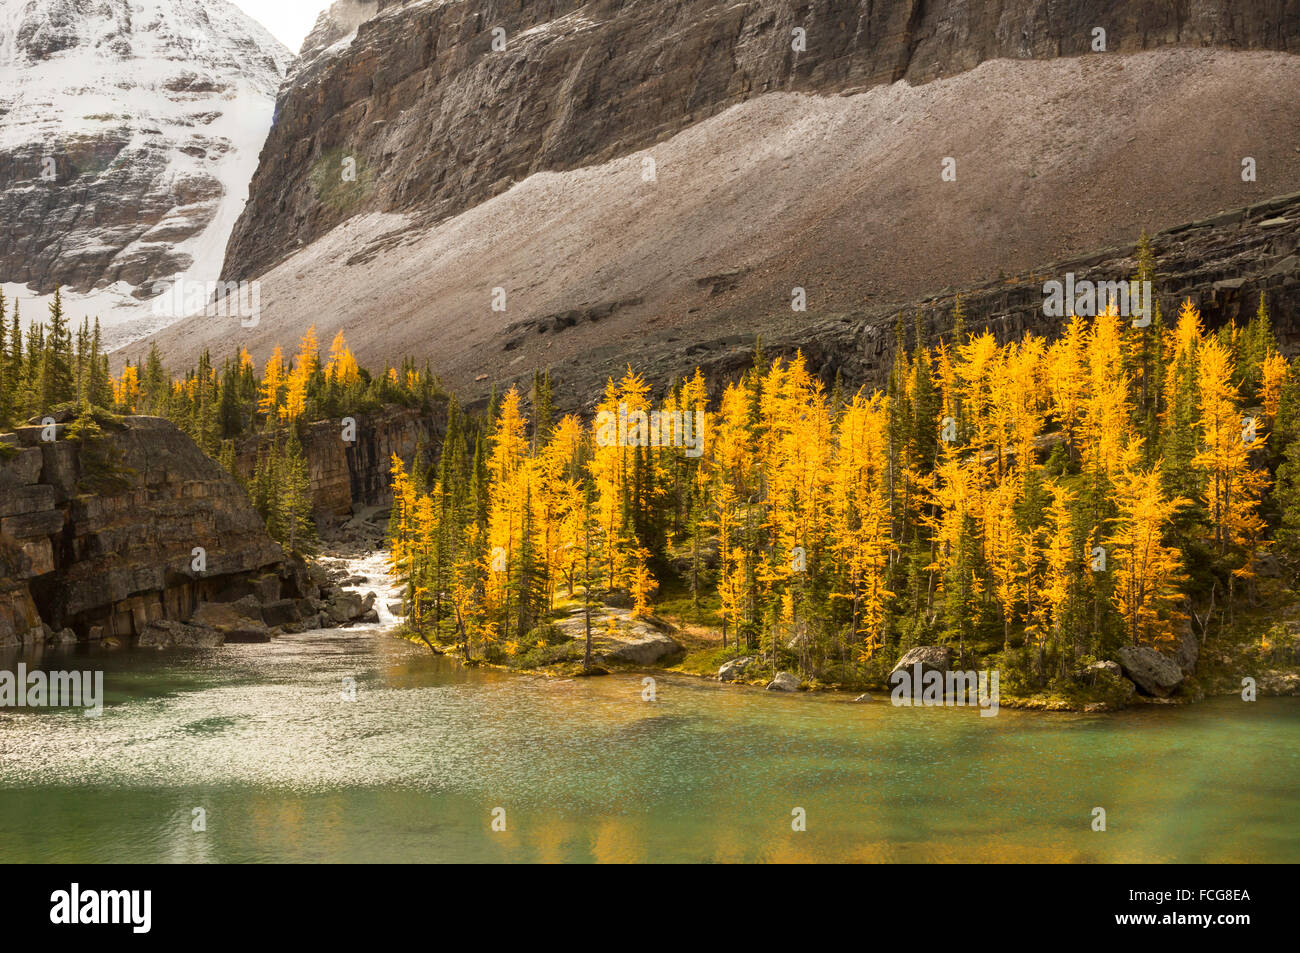 Golden larch trees on the shore of a pristine alpine lake in Yoho National Park, British Columbia, Canada - Stock Image